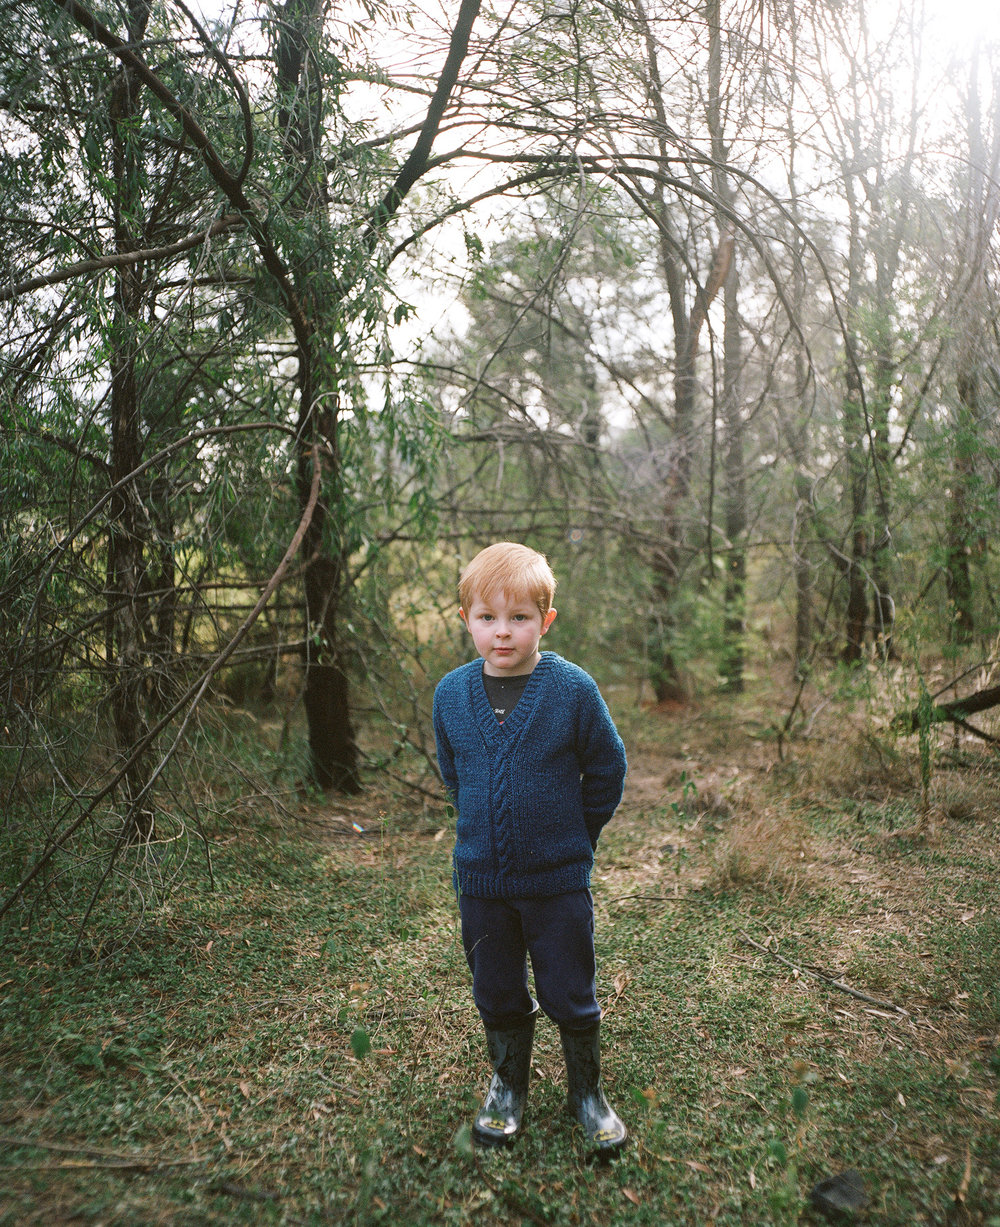 Jason Round Mamiya rb67 3681-06-copy.jpg